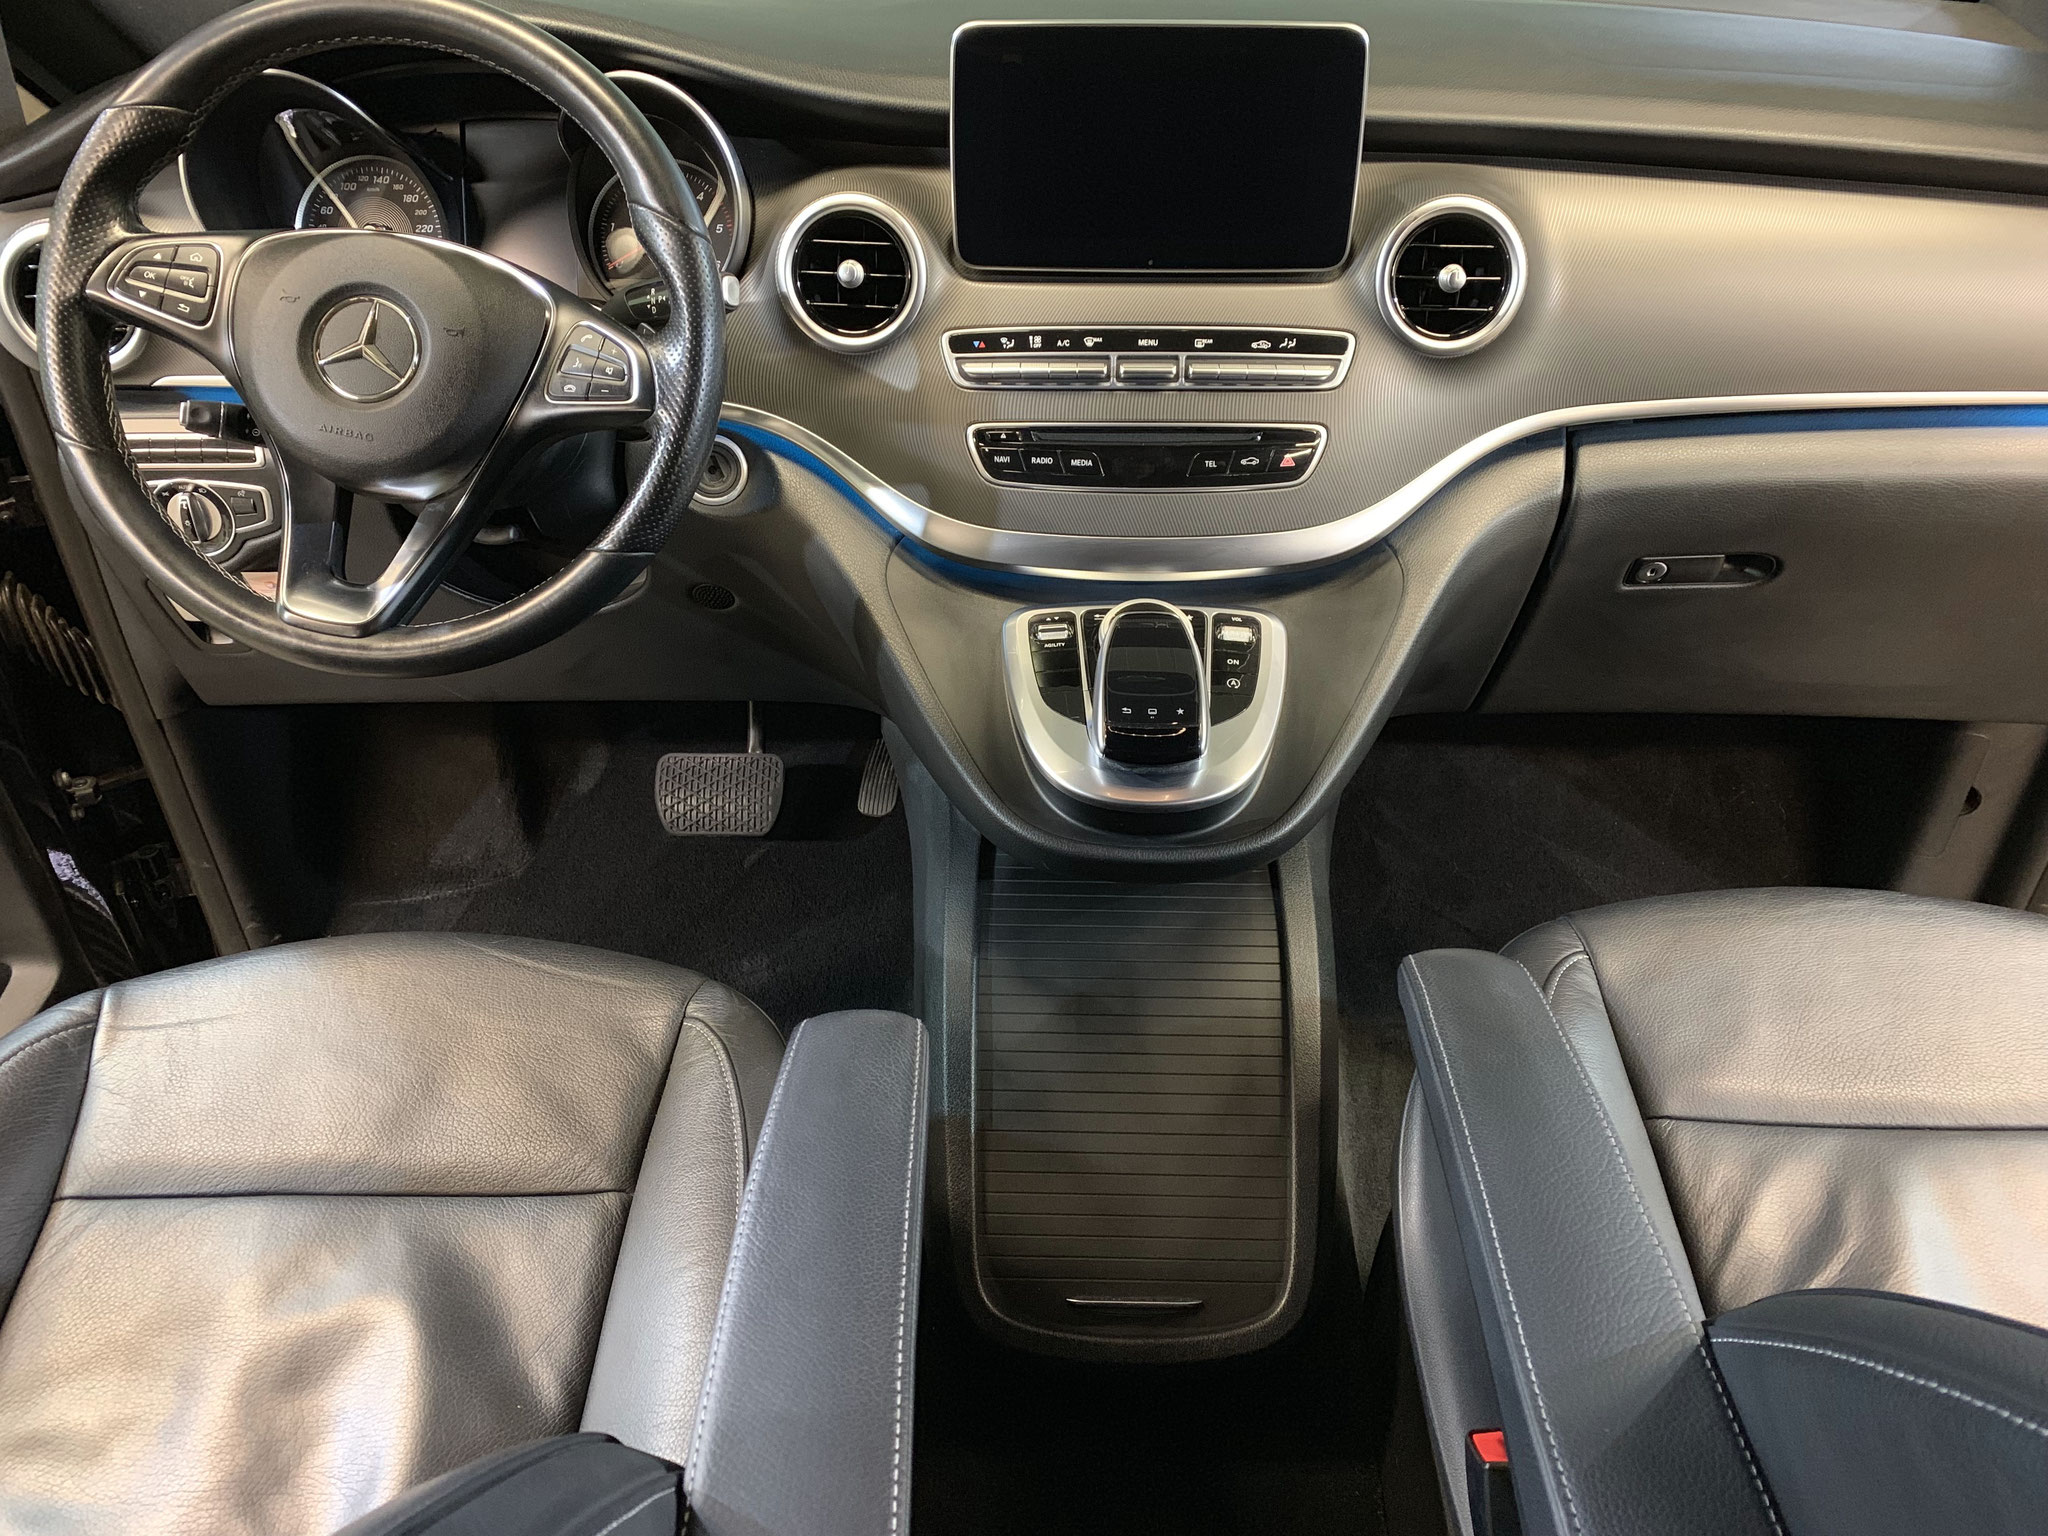 Mercedes V-Class 250D na full interior + leather care